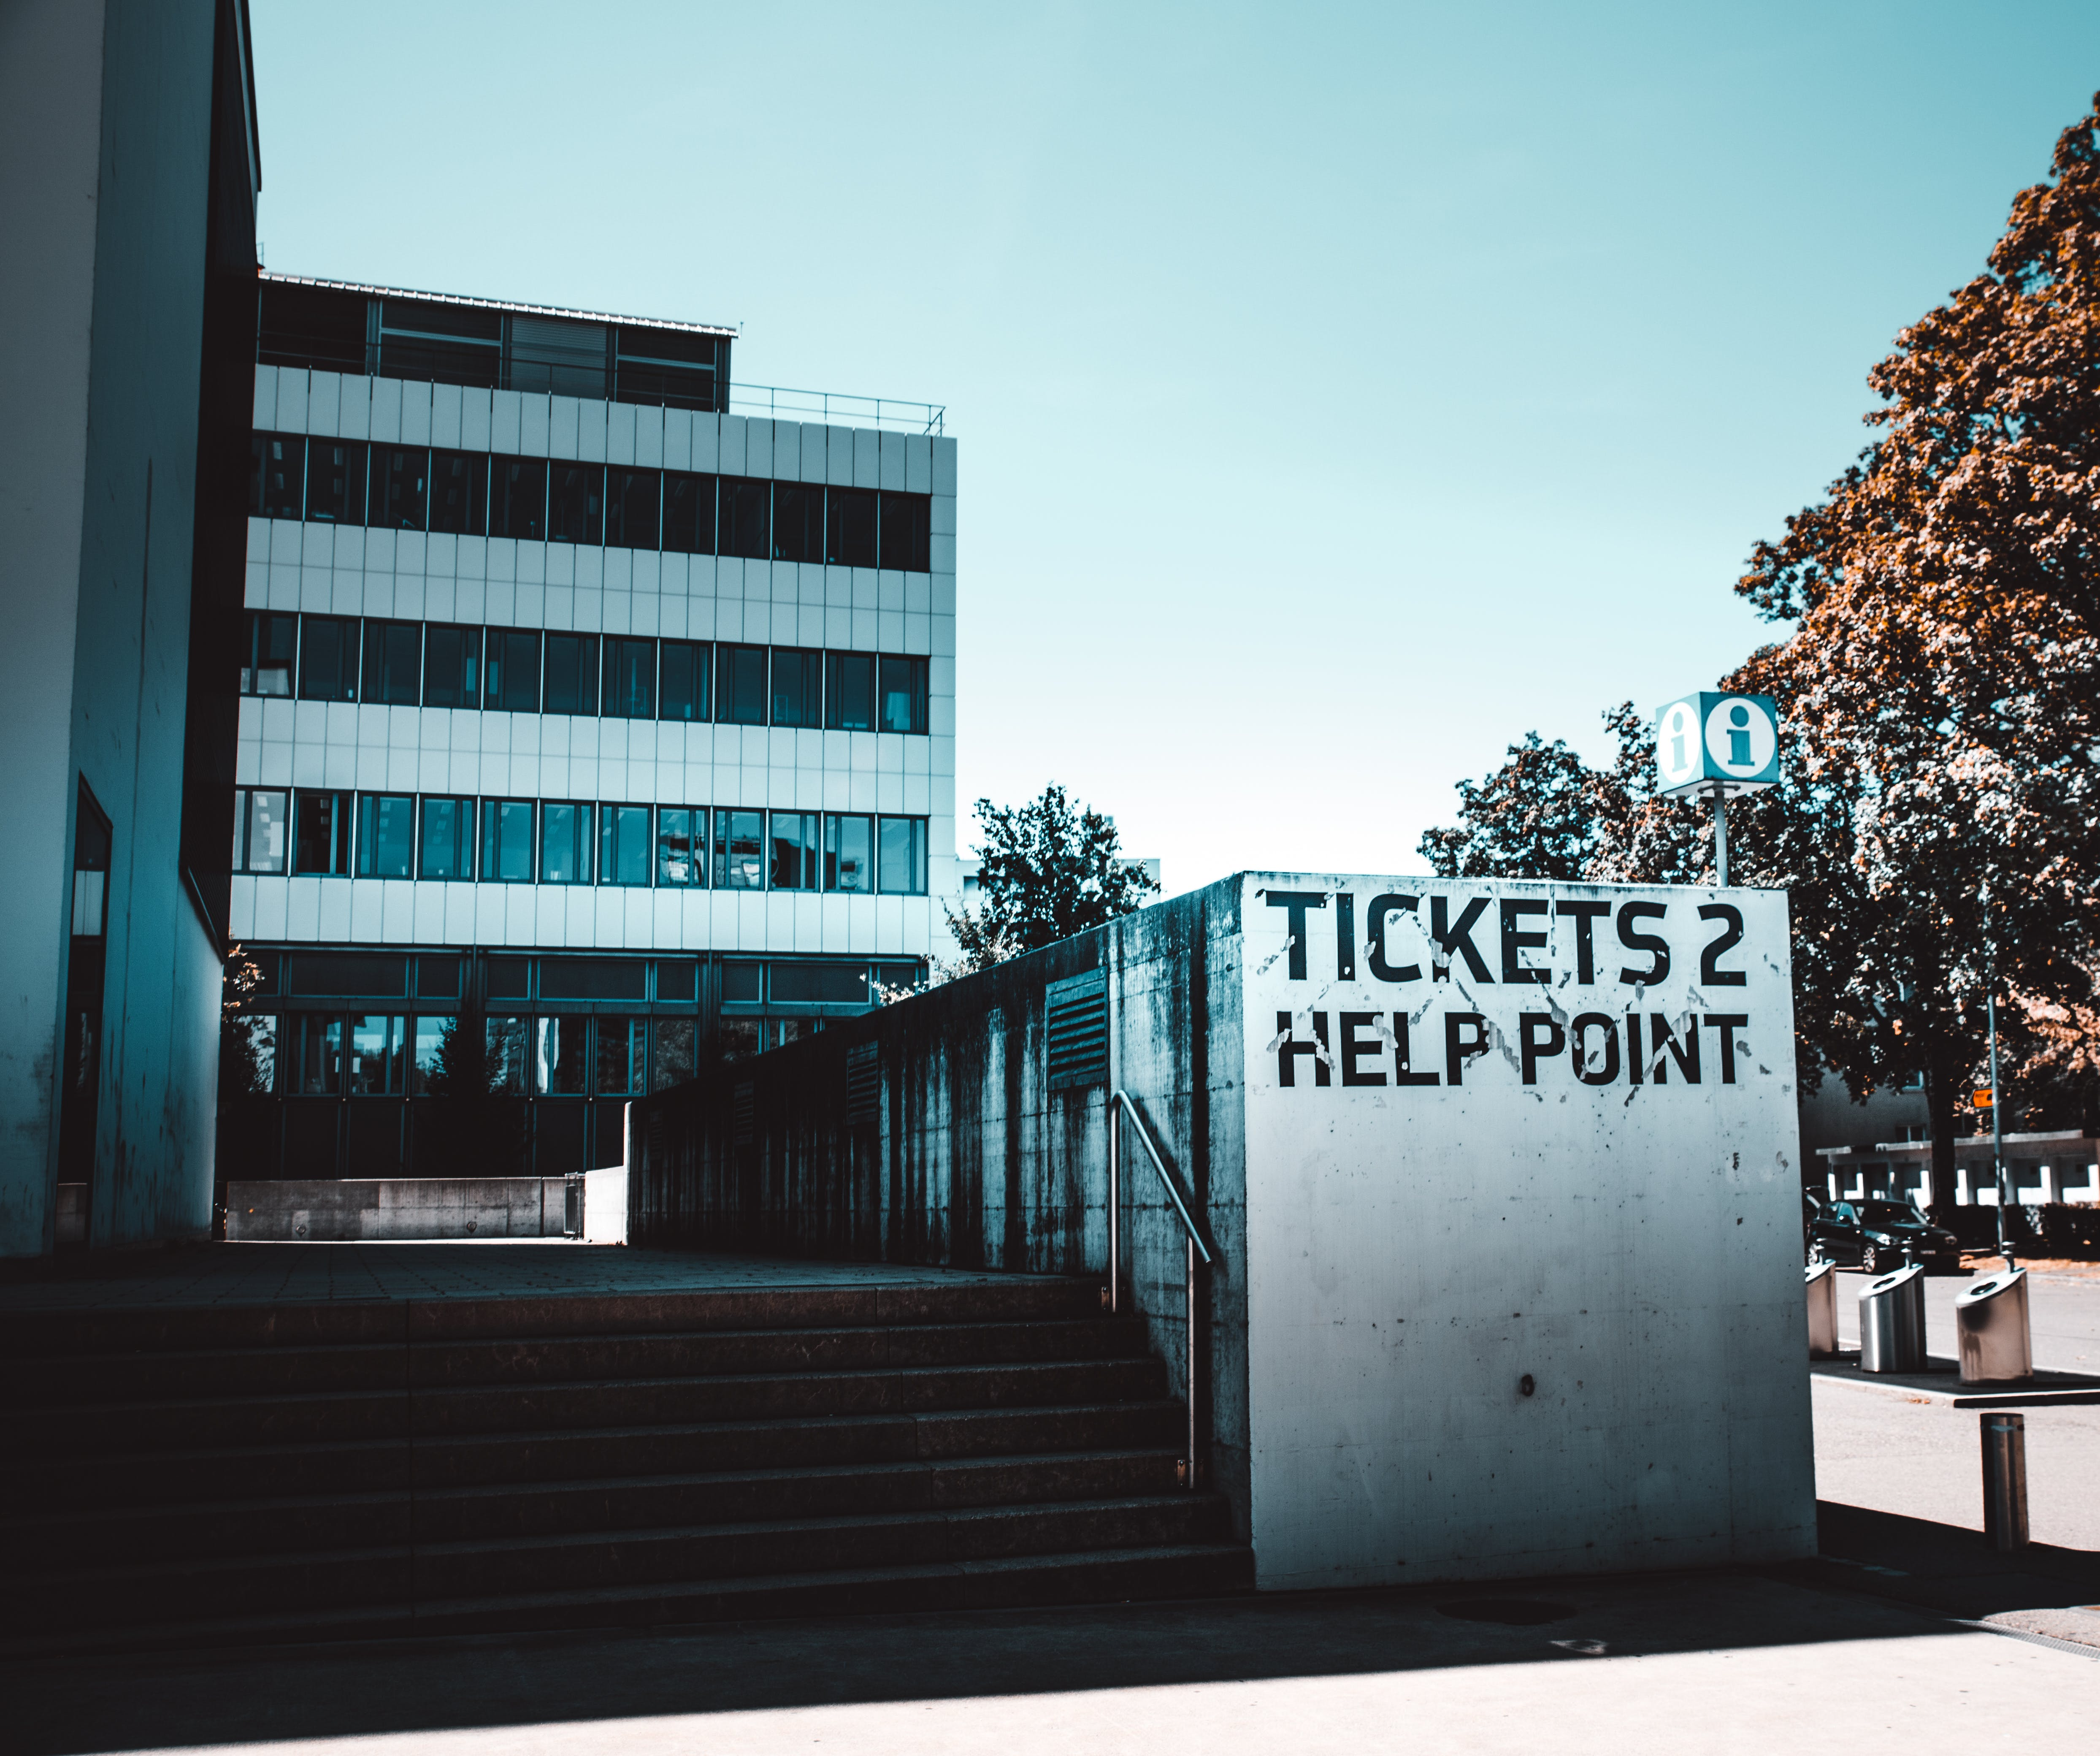 Free stock photo of ticket, checking